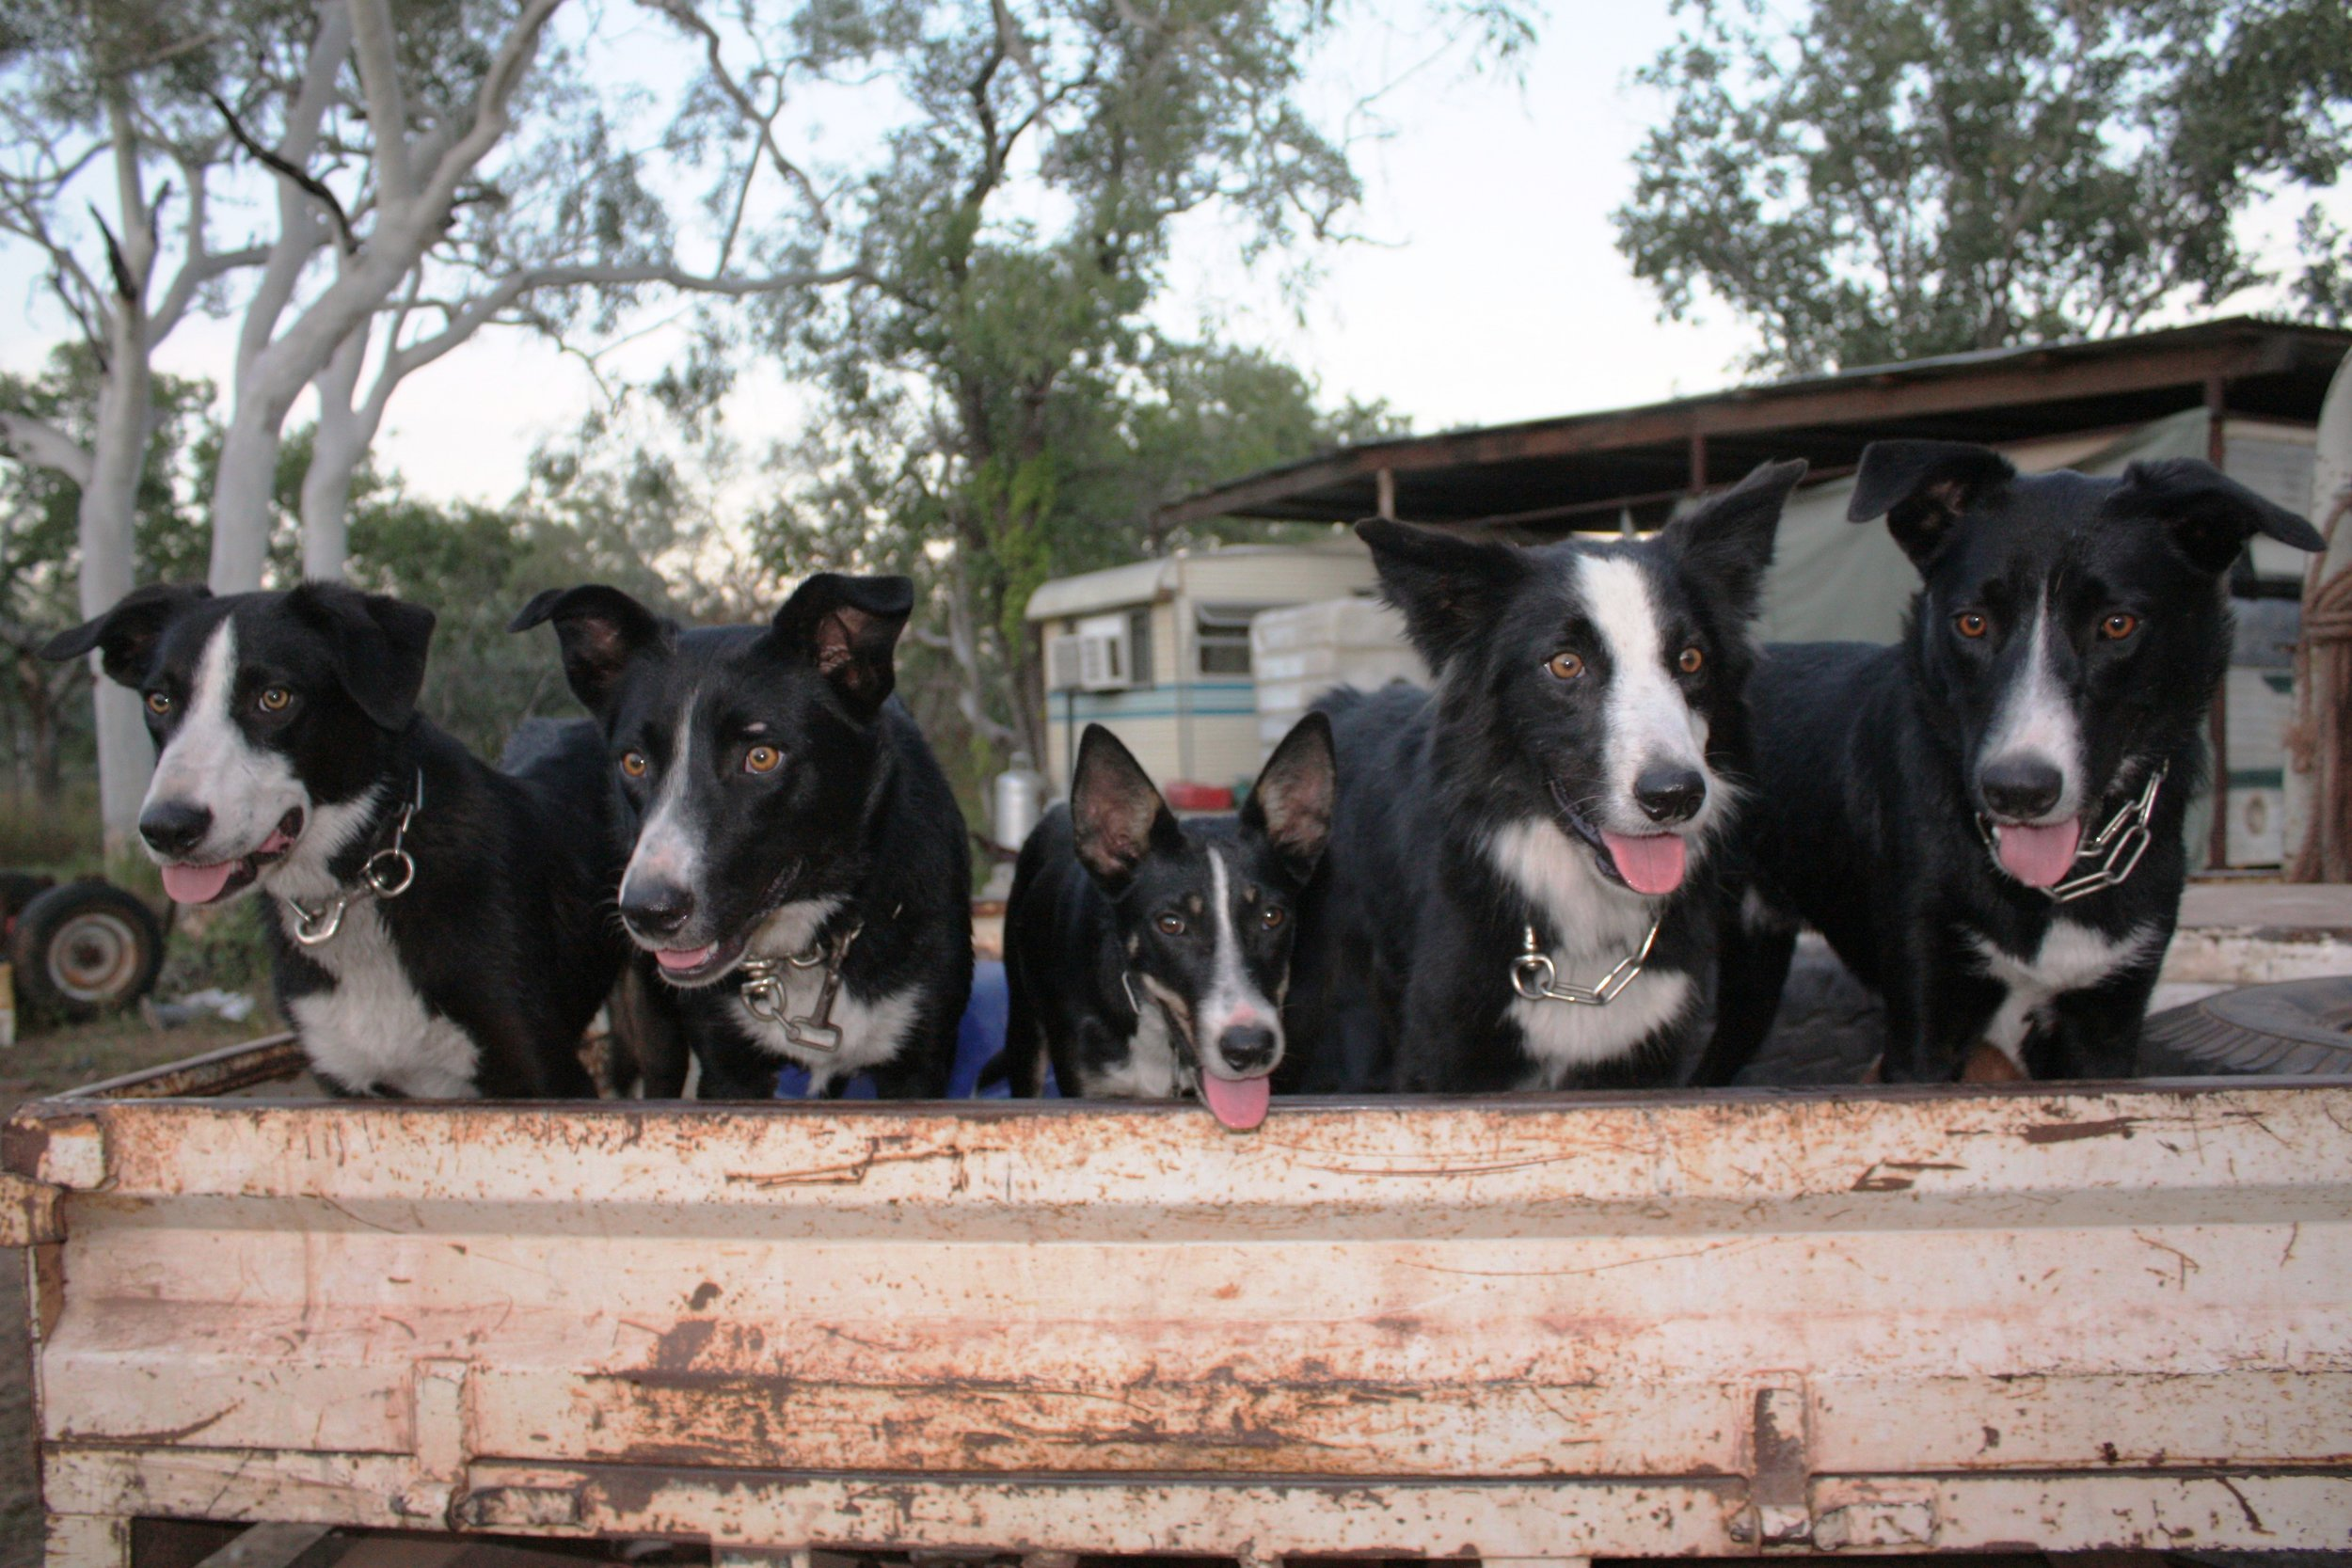 Lisa's working dogs. Left to right: Clown, Blip, Willie, Dennis and Burr, image supplied.